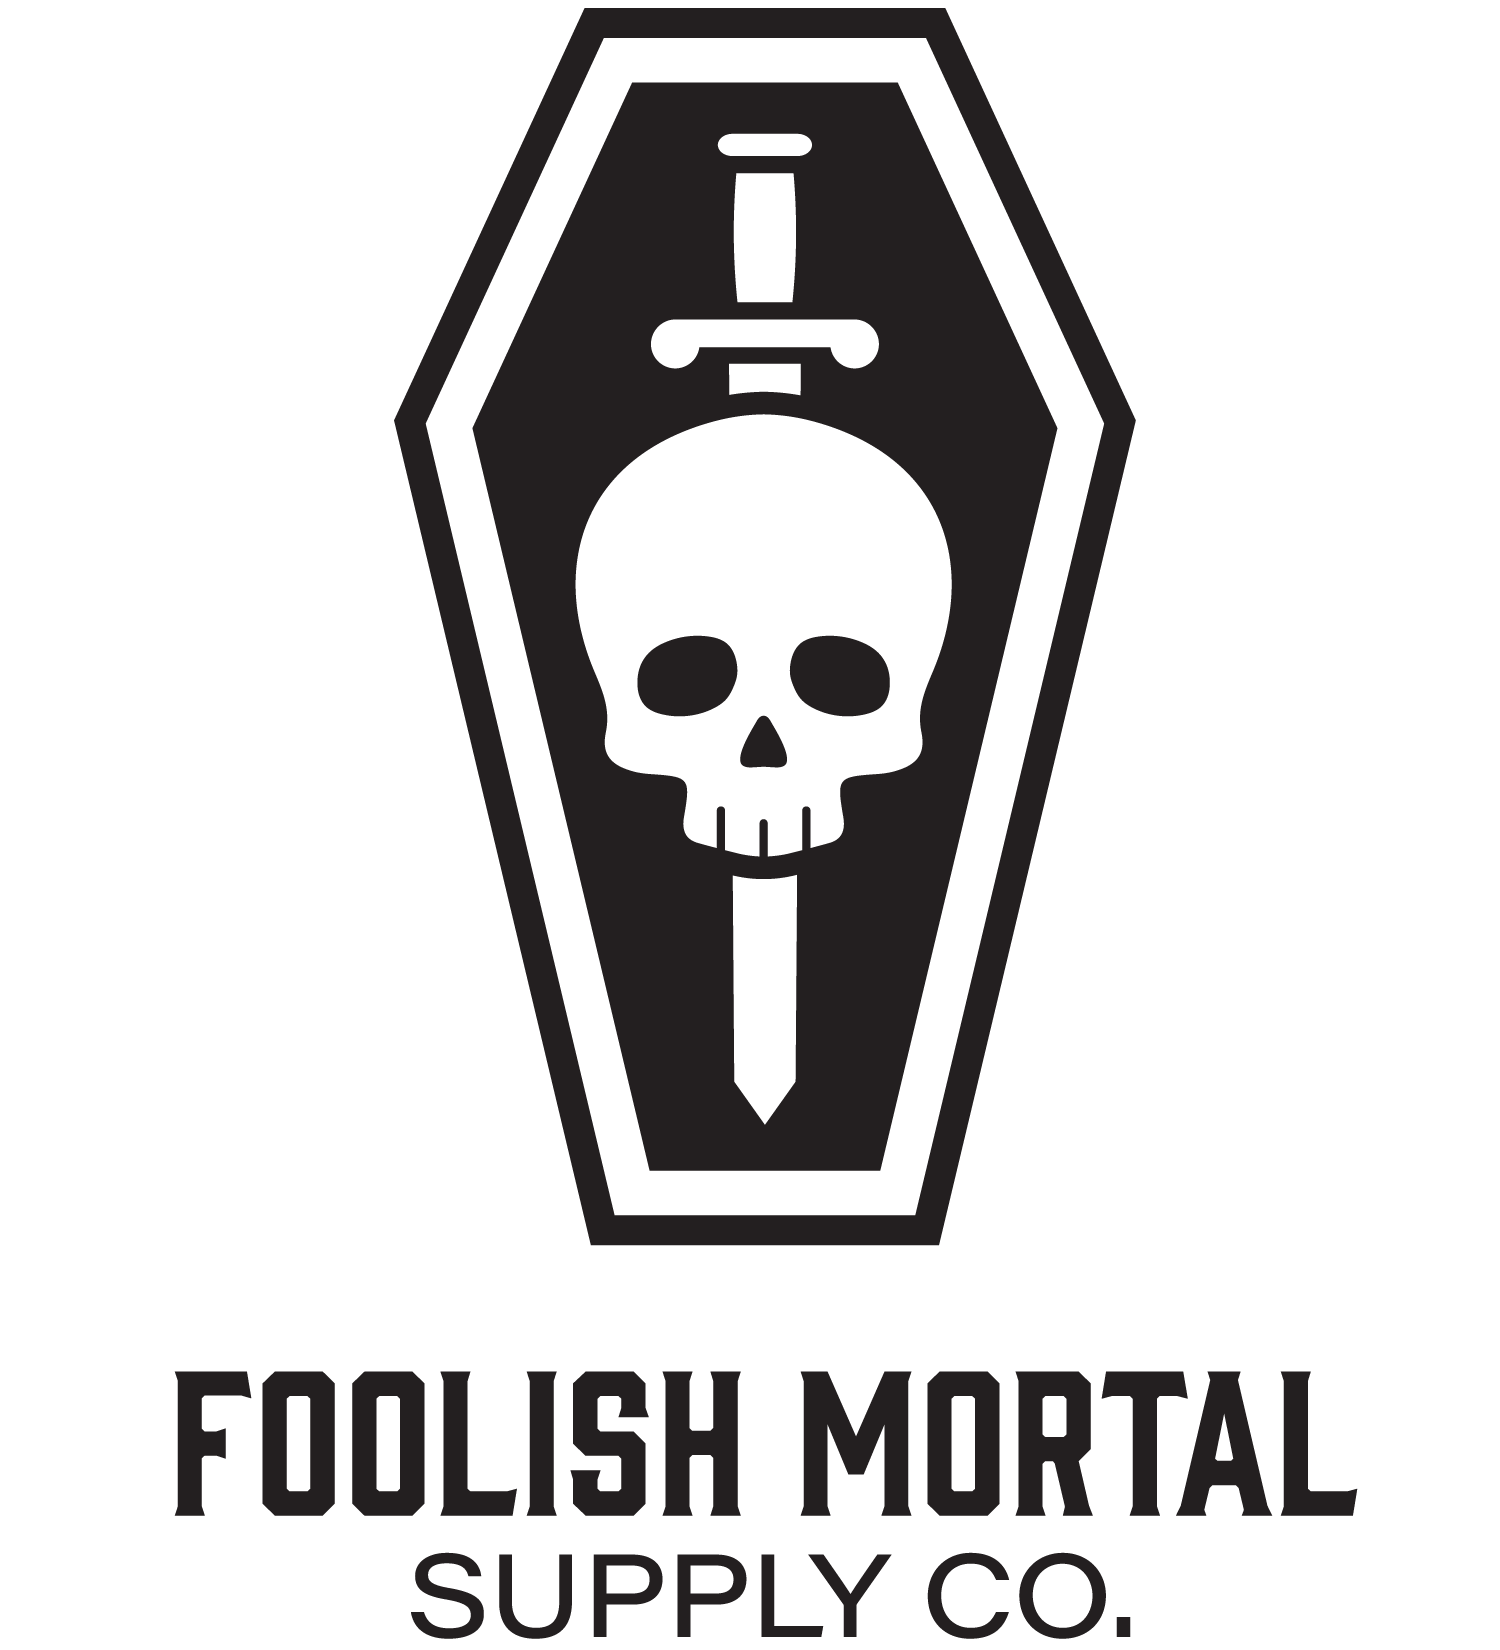 Foolish Mortal Supply Co.